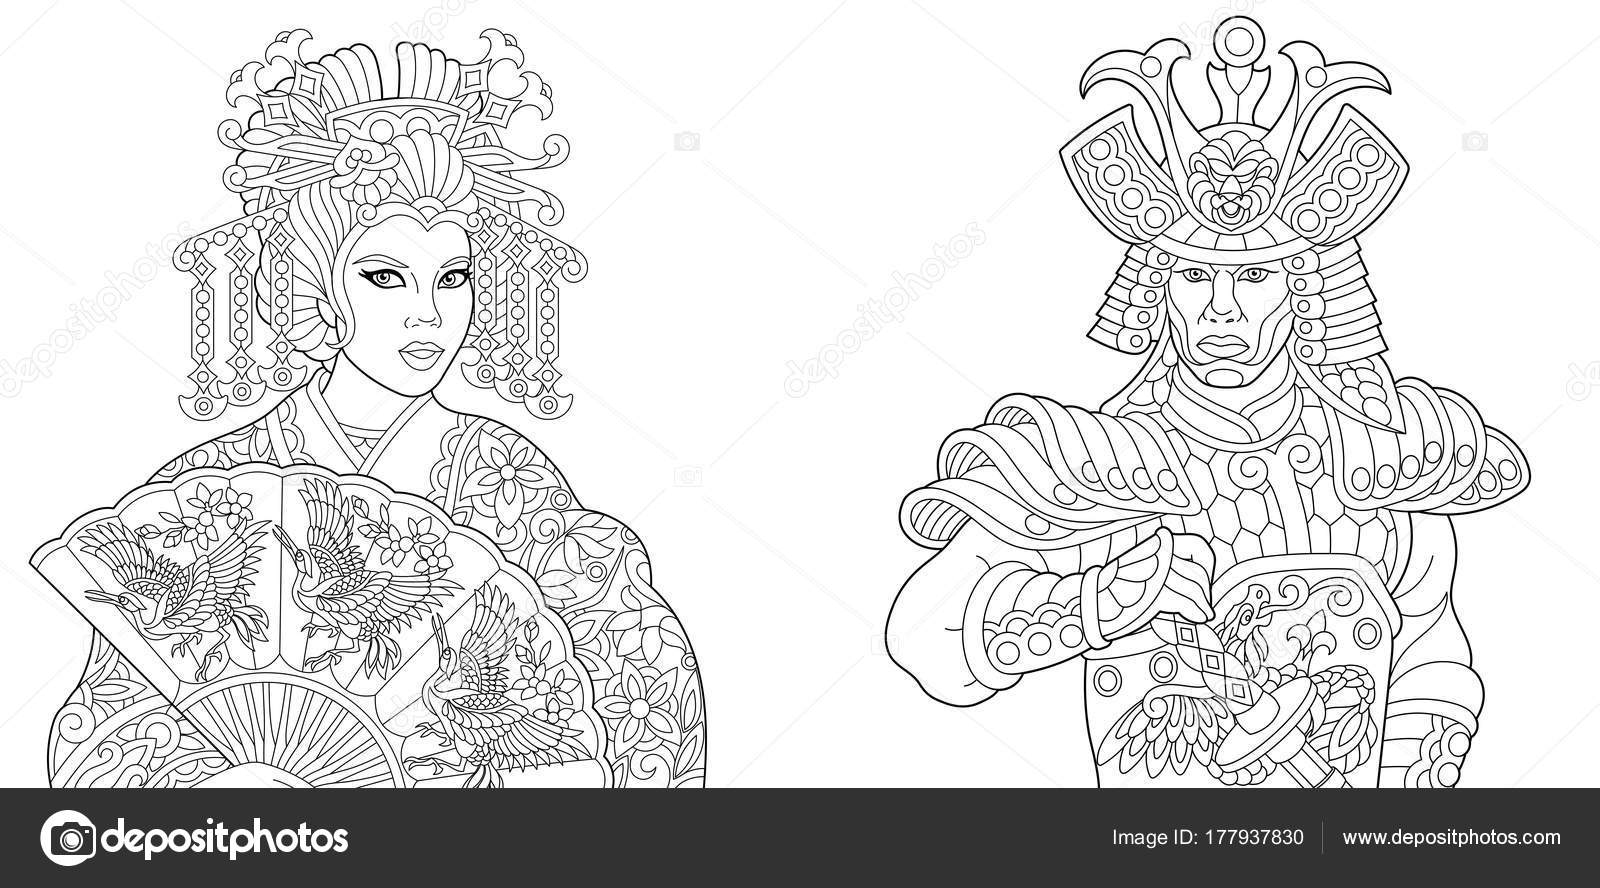 japanese people coloring page — Stock Vector © Sybirko #177937830